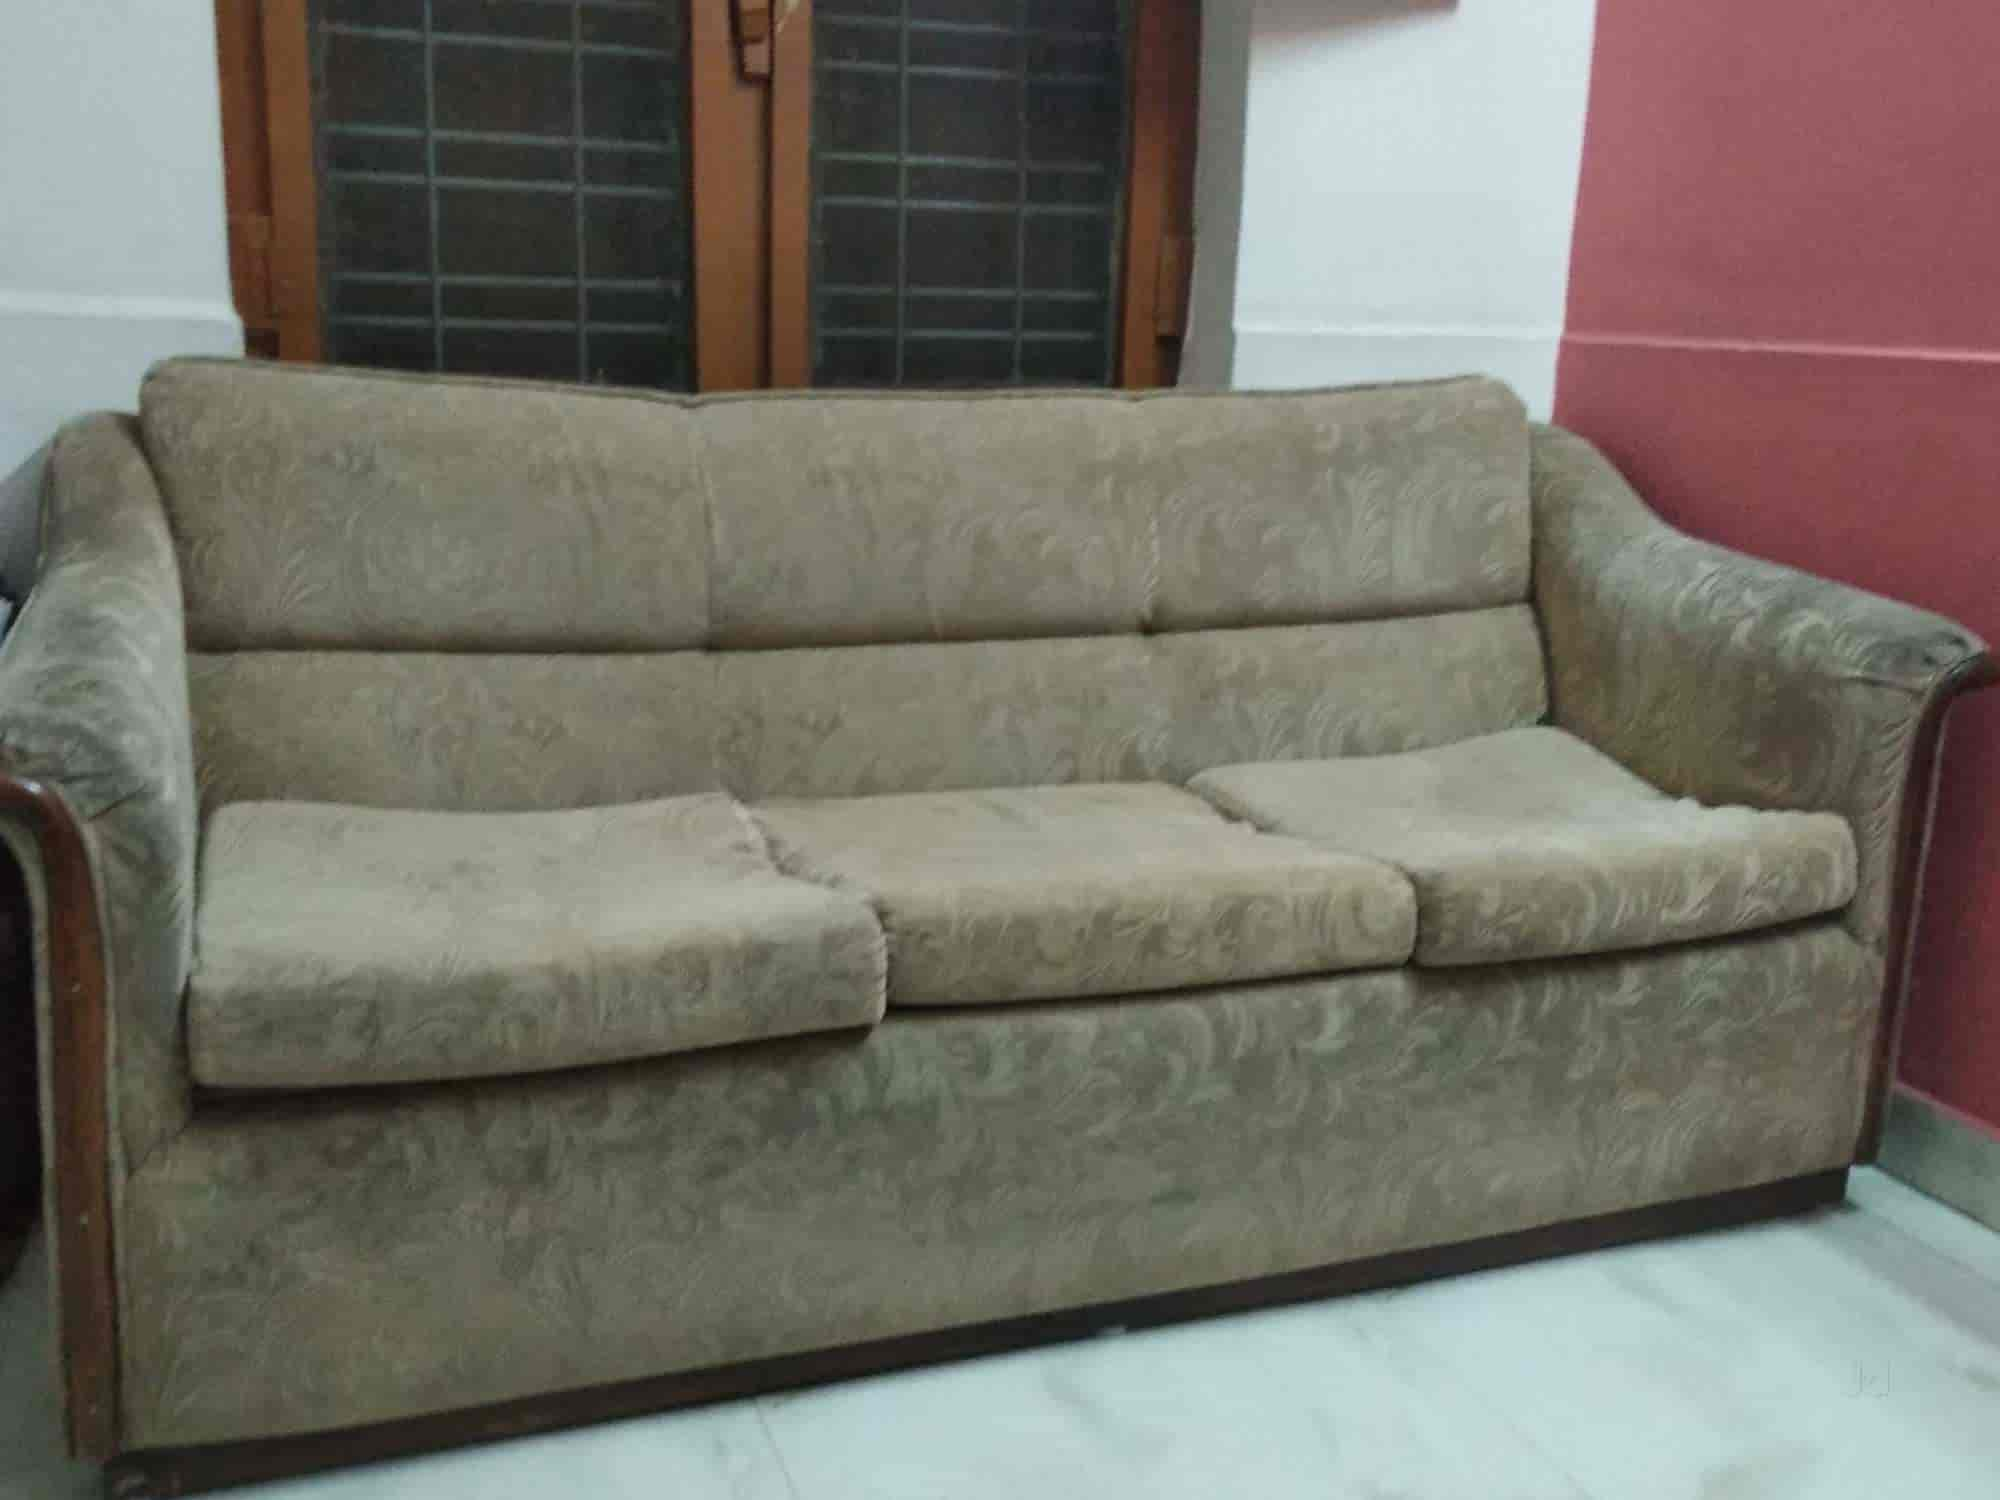 sofa second hand in bangalore living room sofas cheap mmk wooden works shamana nagar furniture buyers justdial